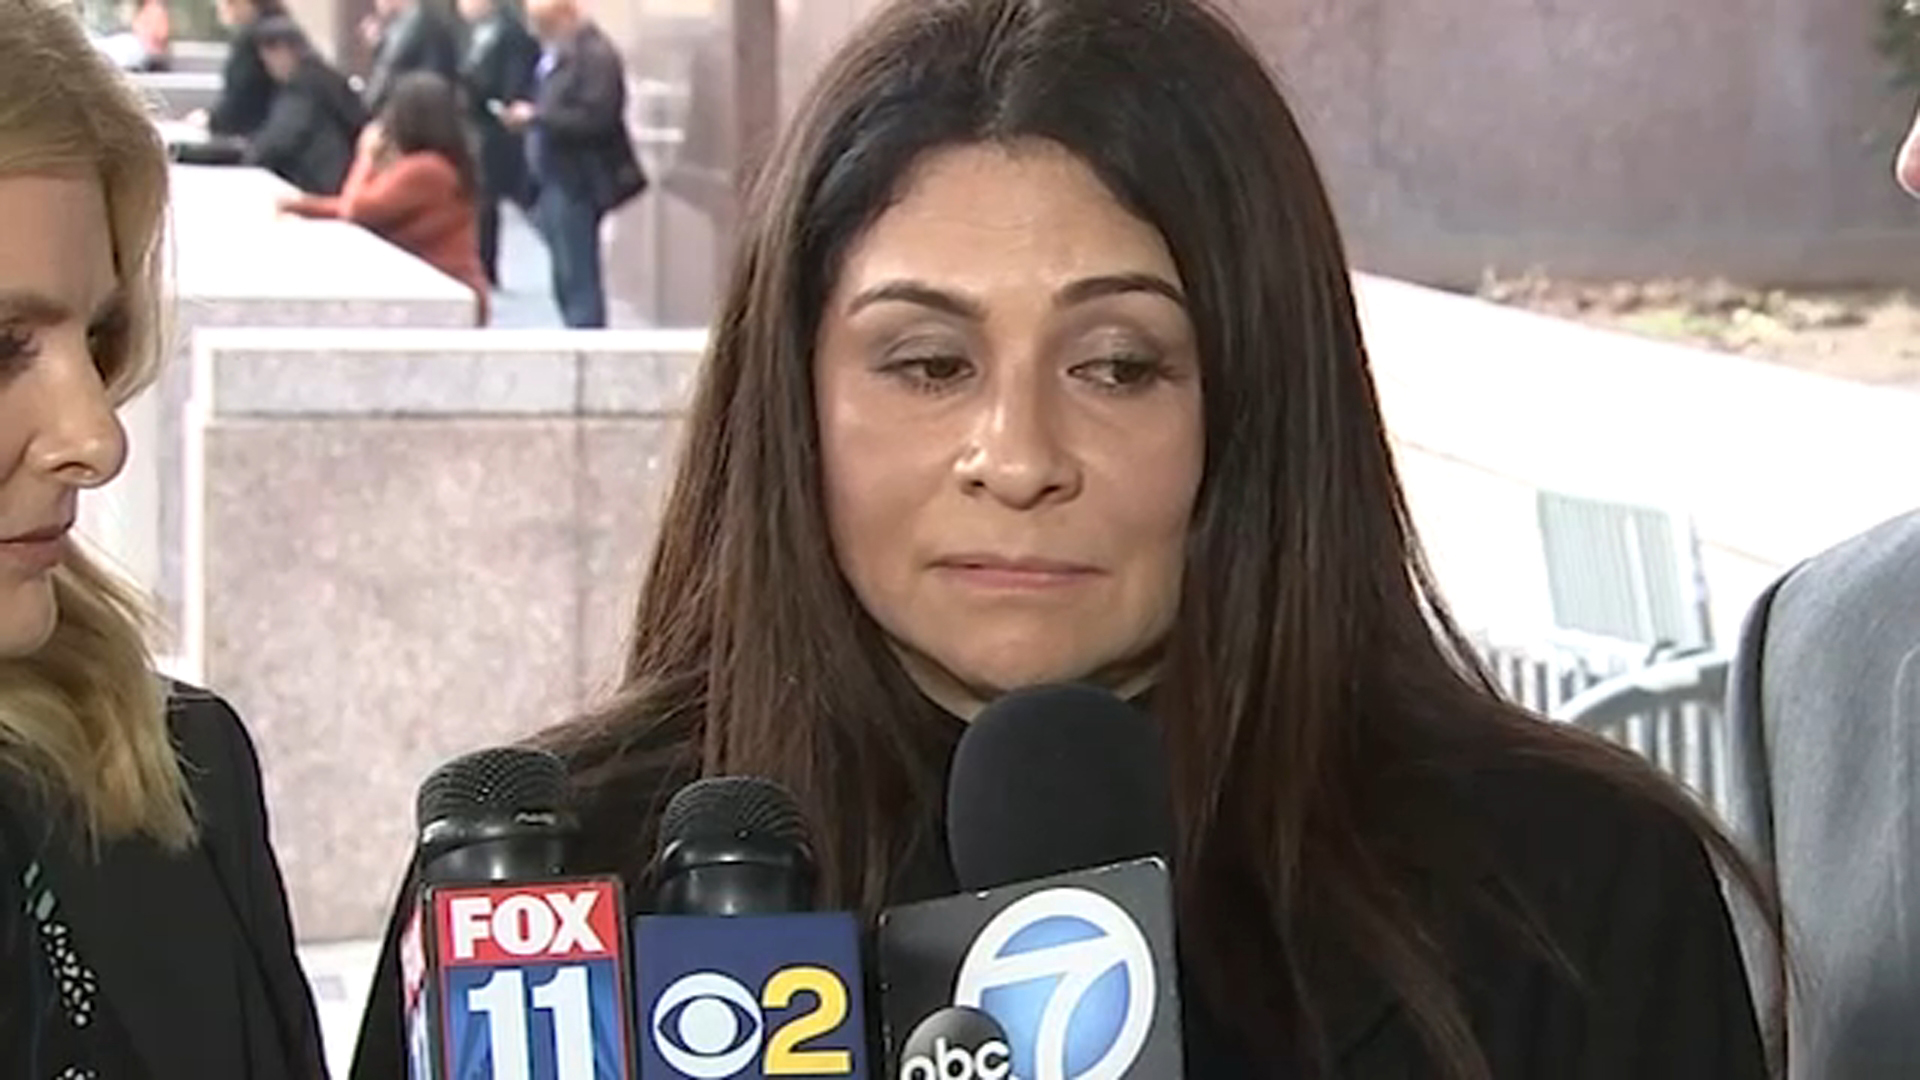 Los Angeles Police Department Detective Ysabel Villegas speaks outside a courthouse about a revenge porn scandal that rocked the LAPD.